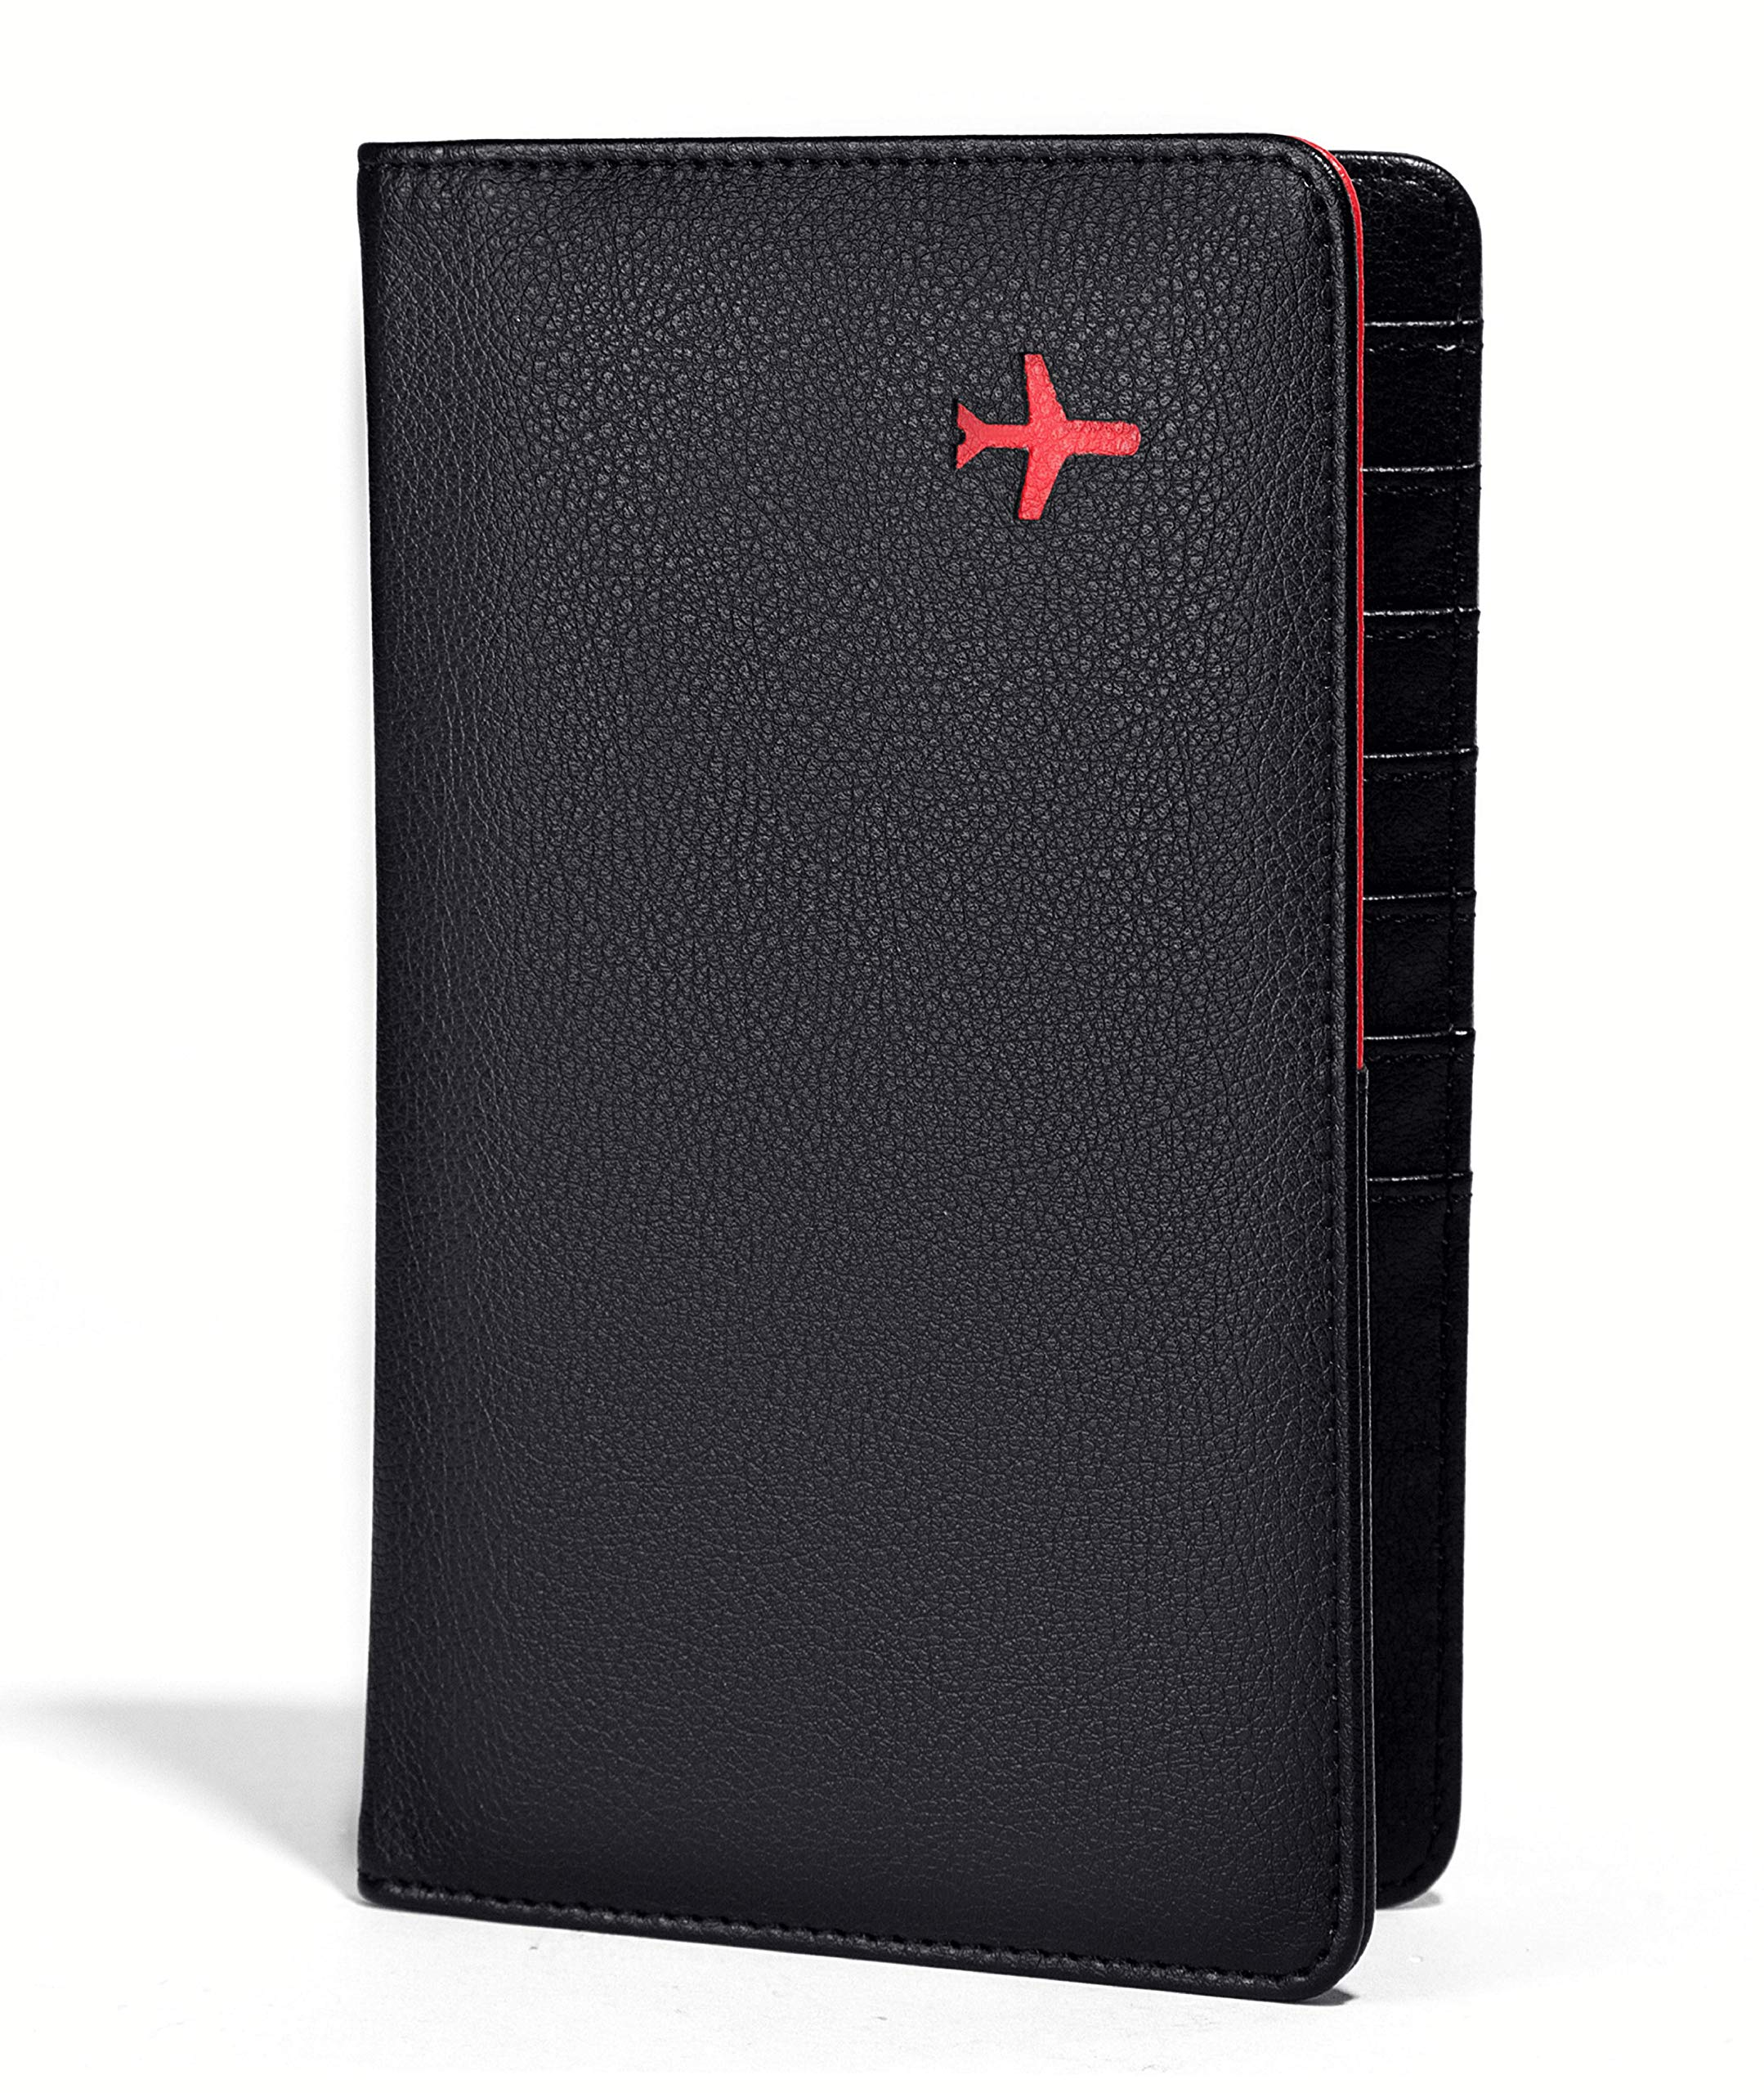 Travel Design all in one Travel Wallet - 2 Passport Holder Organizer - Gift box (Black/Red)